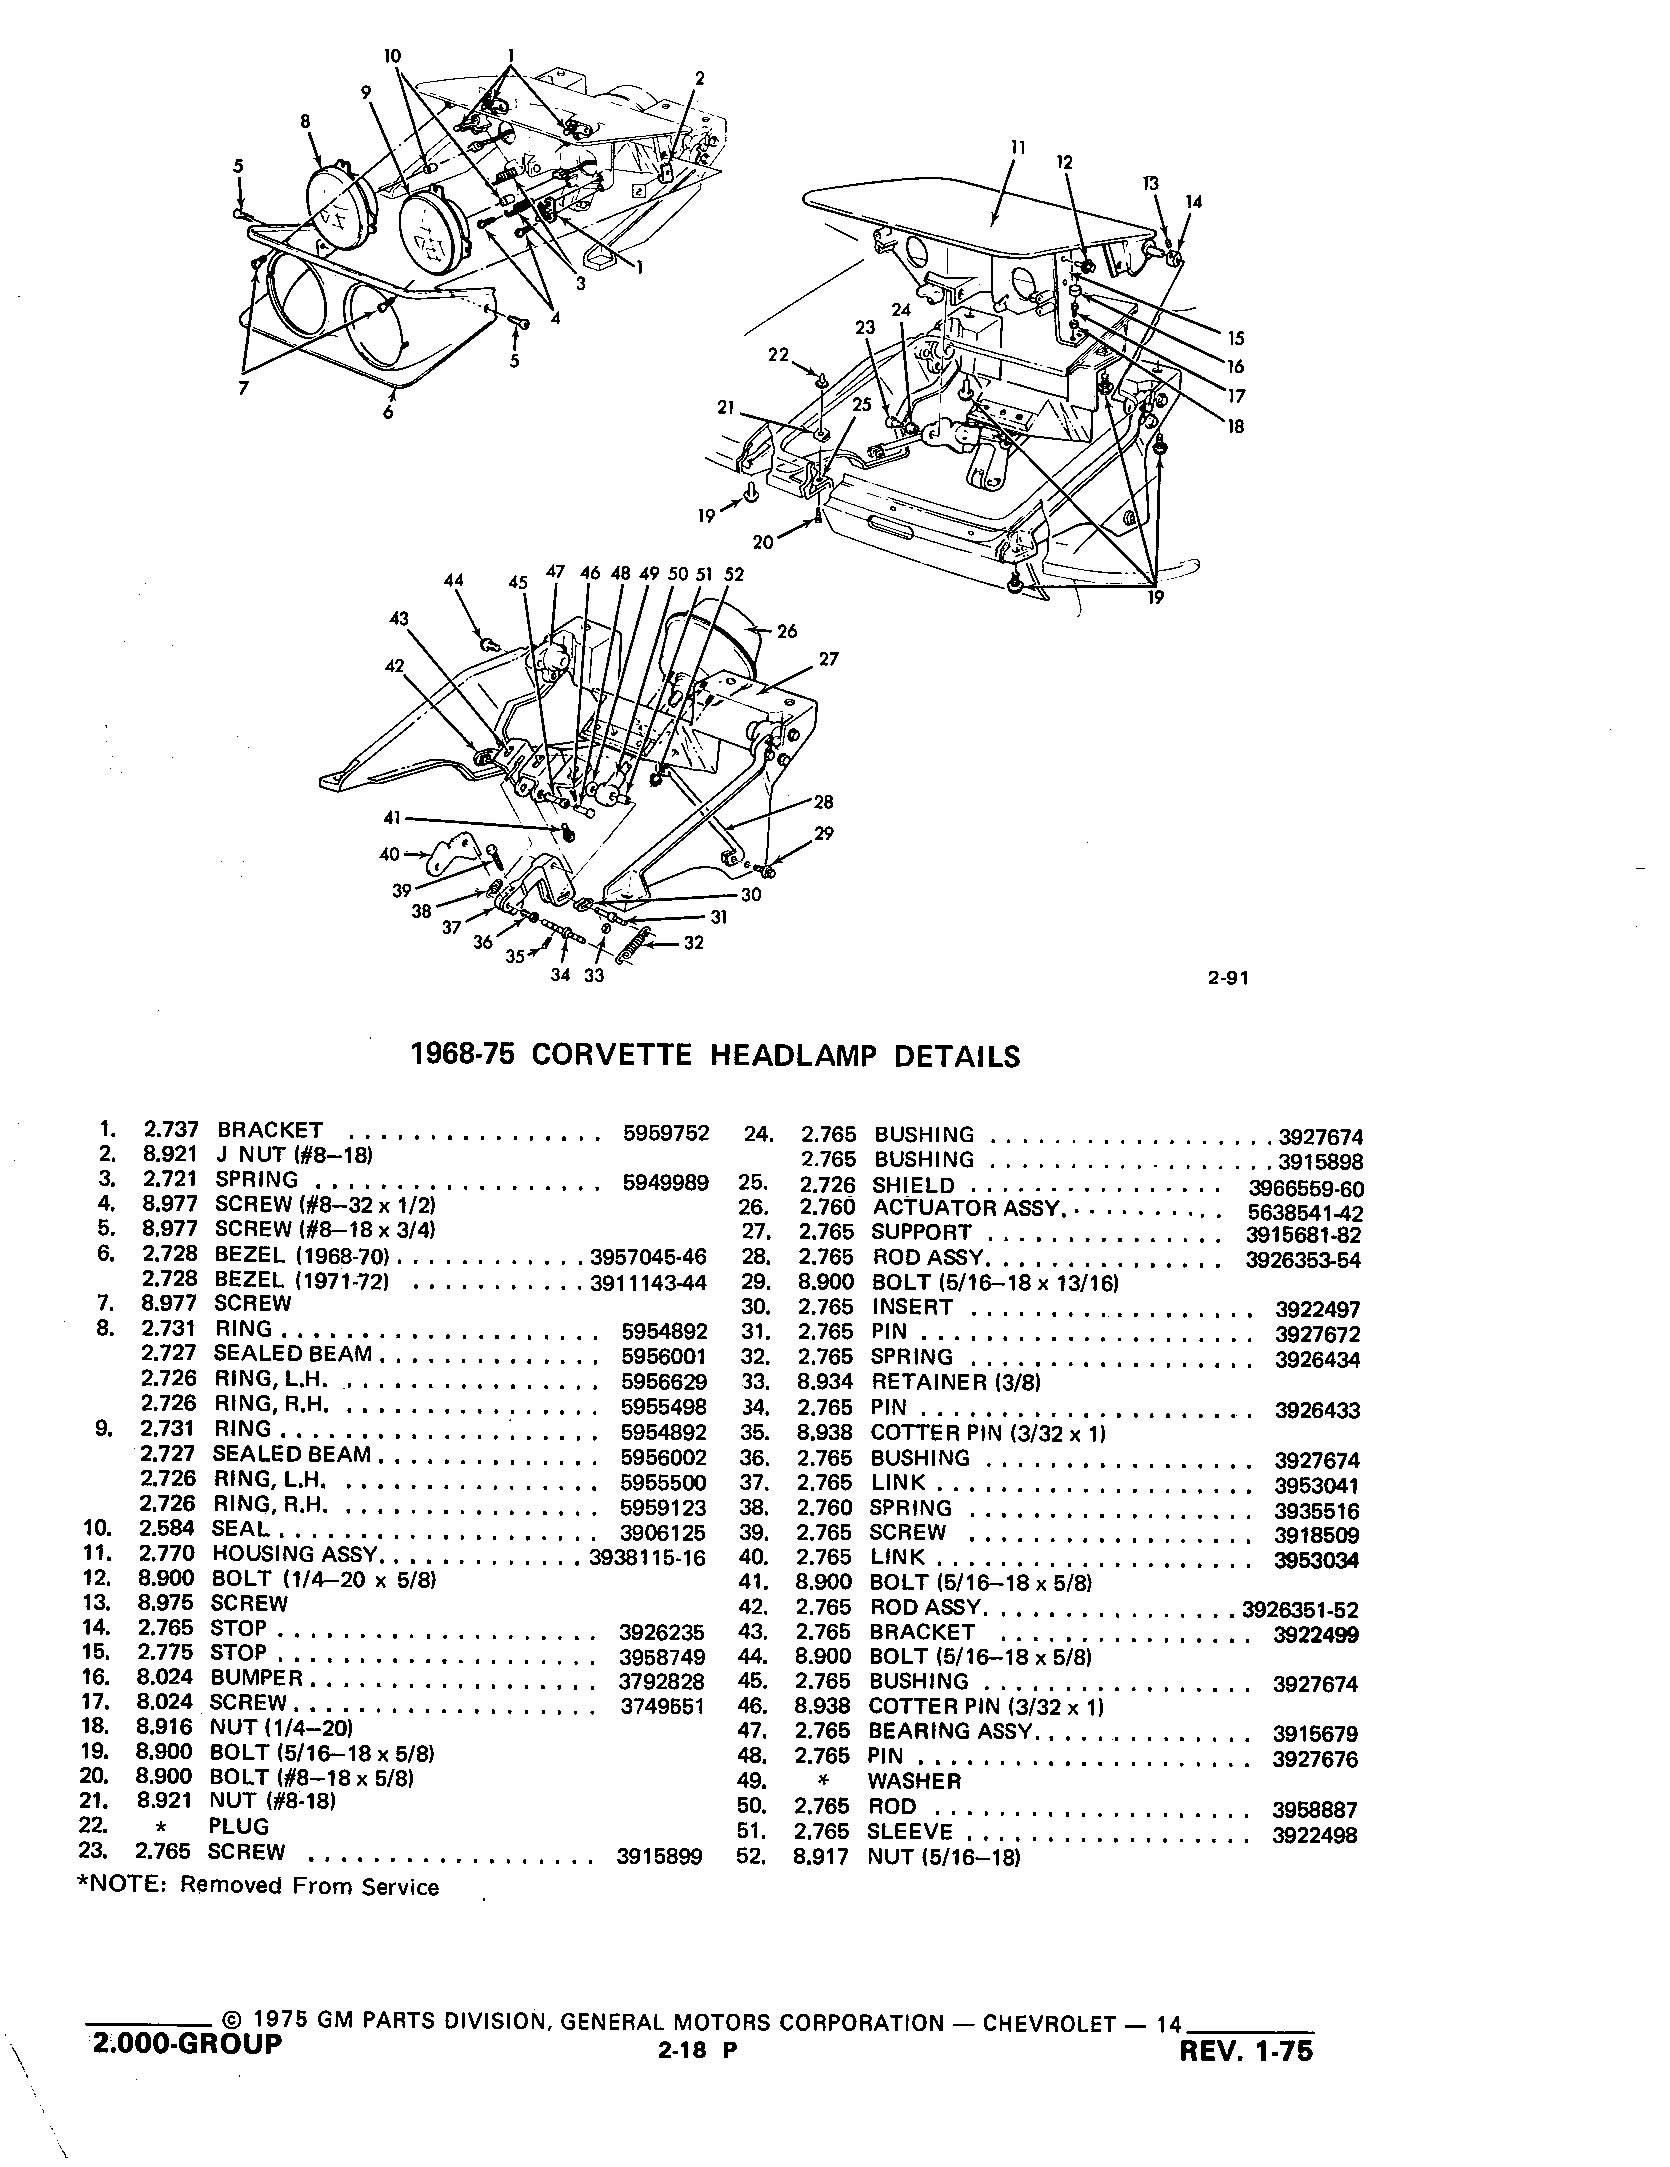 Group2 Chassis Electrical System / 1953-1973 Corvette